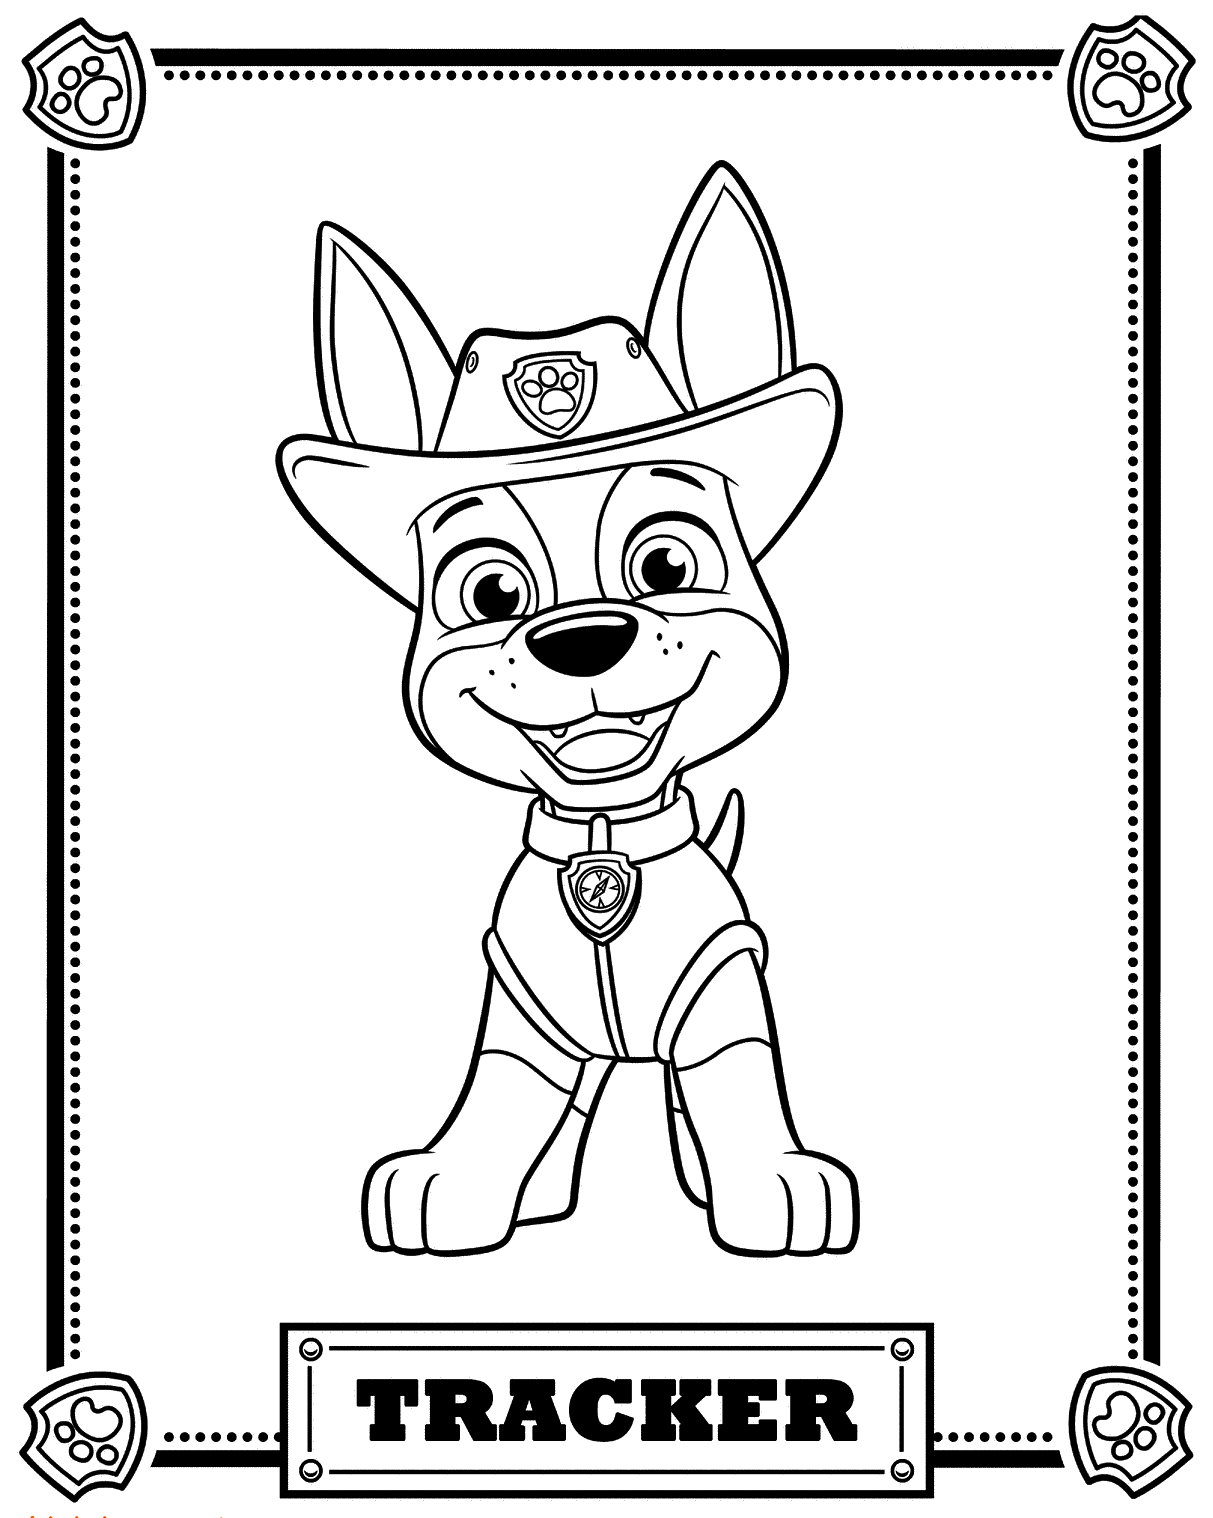 coloring pages of paw patrol paw patrol badges coloring pages at getcoloringscom patrol pages coloring of paw